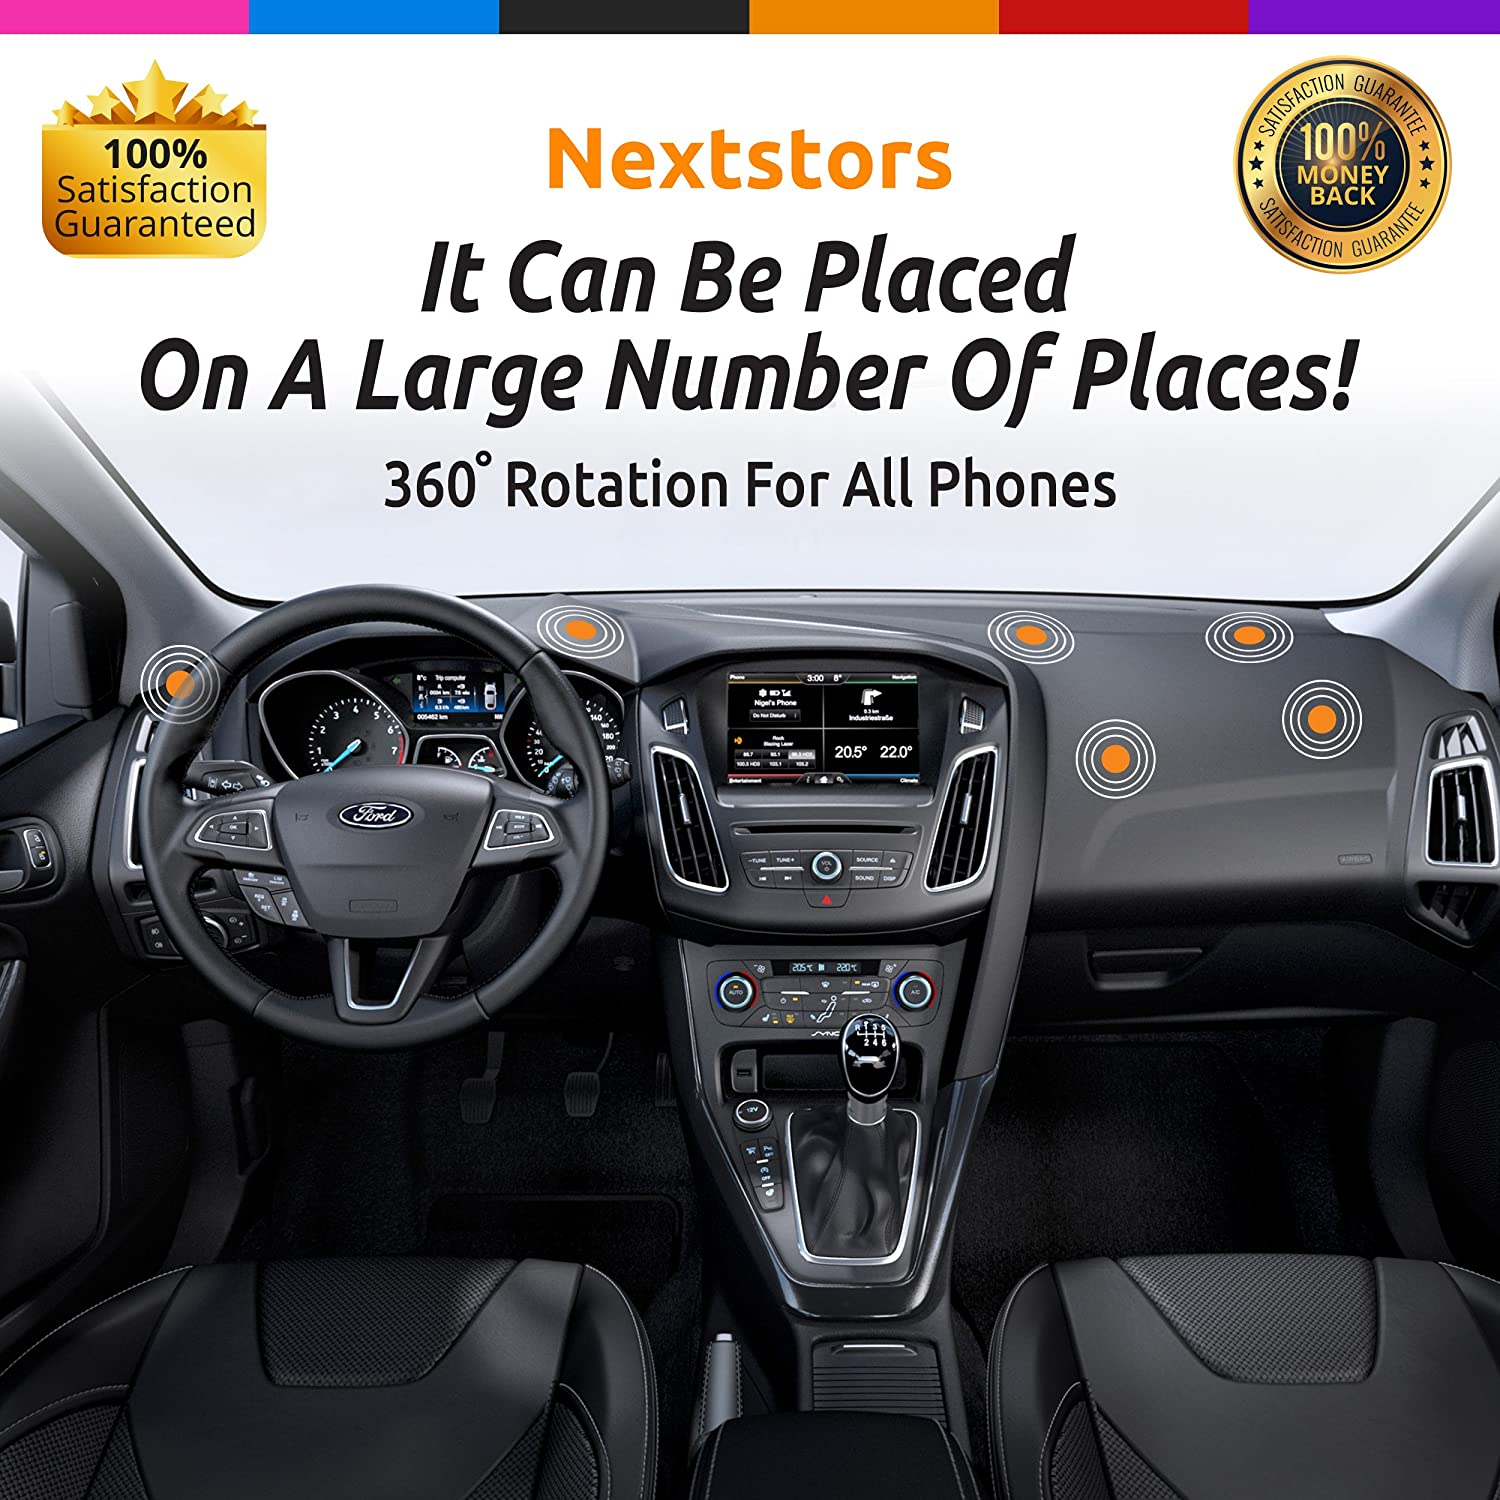 Car Phone Holder Truck Bracket Magnetic Adjustable 360 Degree Rotation from Dashboard Universal Car Mount Accessories Compatible with All Smartphones Cell Phone Devices 2019 Gift Pink Nextstors Nextstors-2b GPS Holder